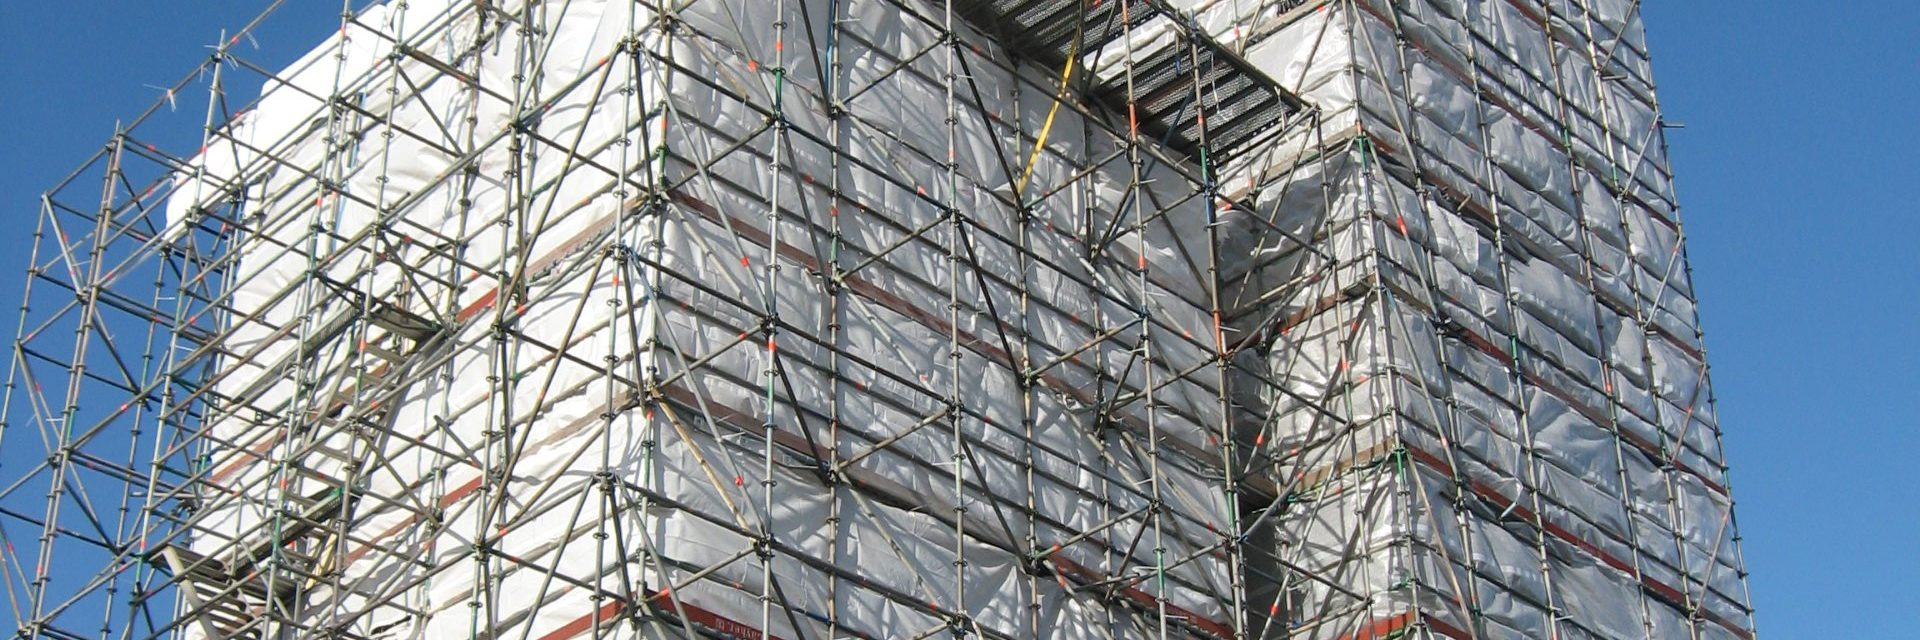 Scaffolding: user, construction and inspection